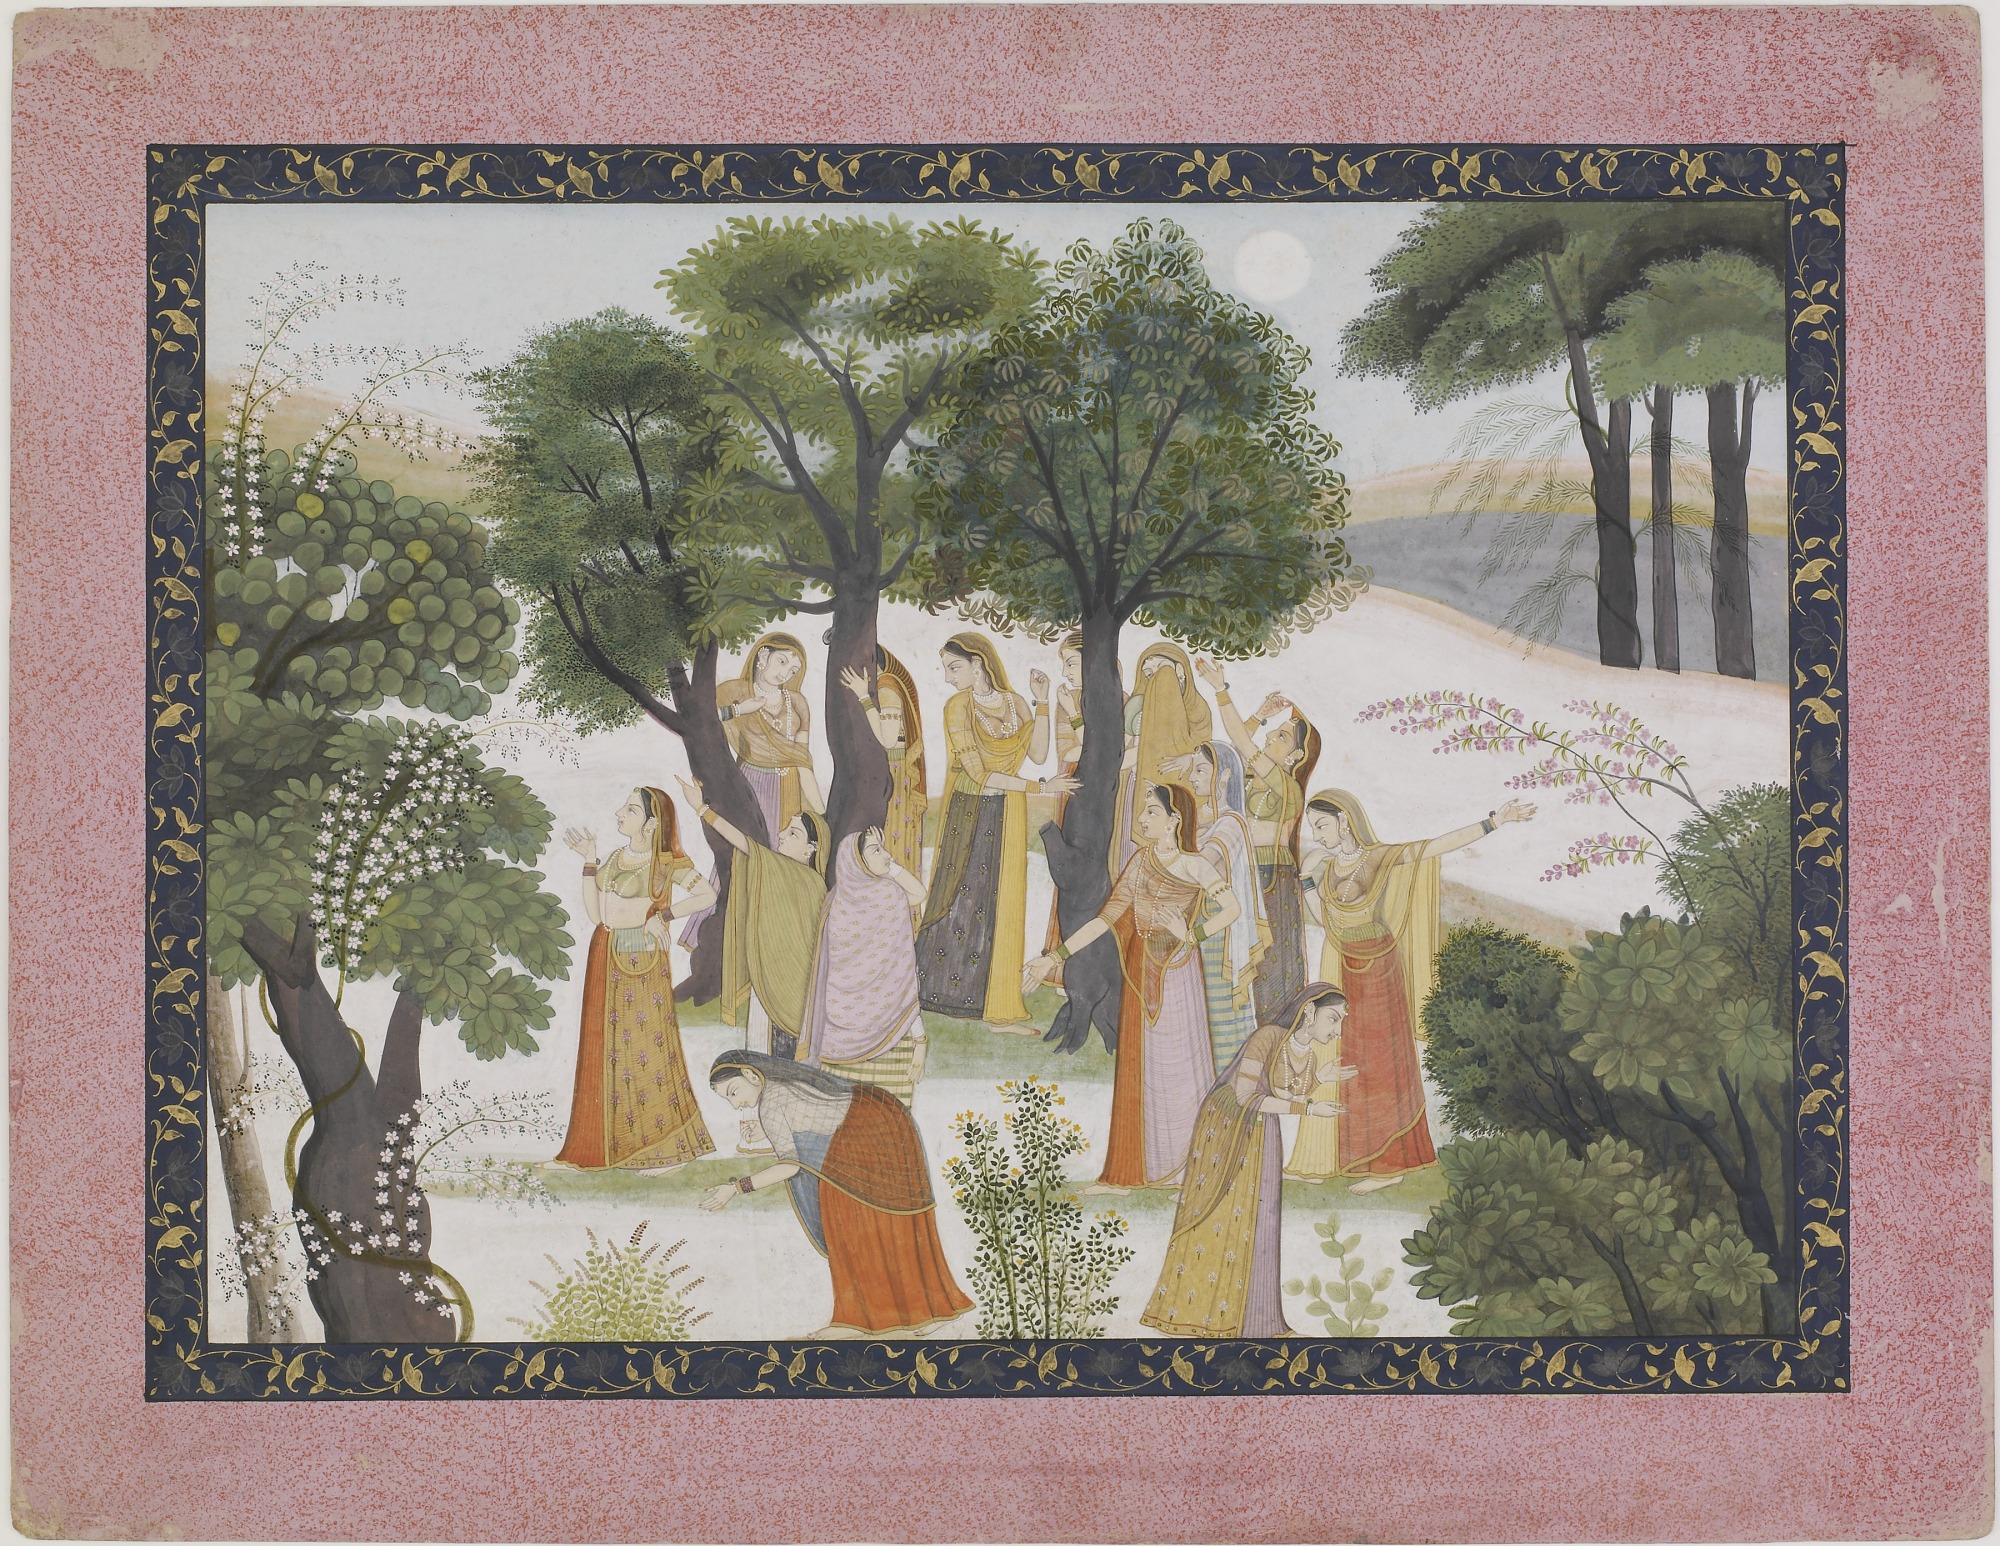 The Gopis Search for Krishna from a Bhagavata Purana